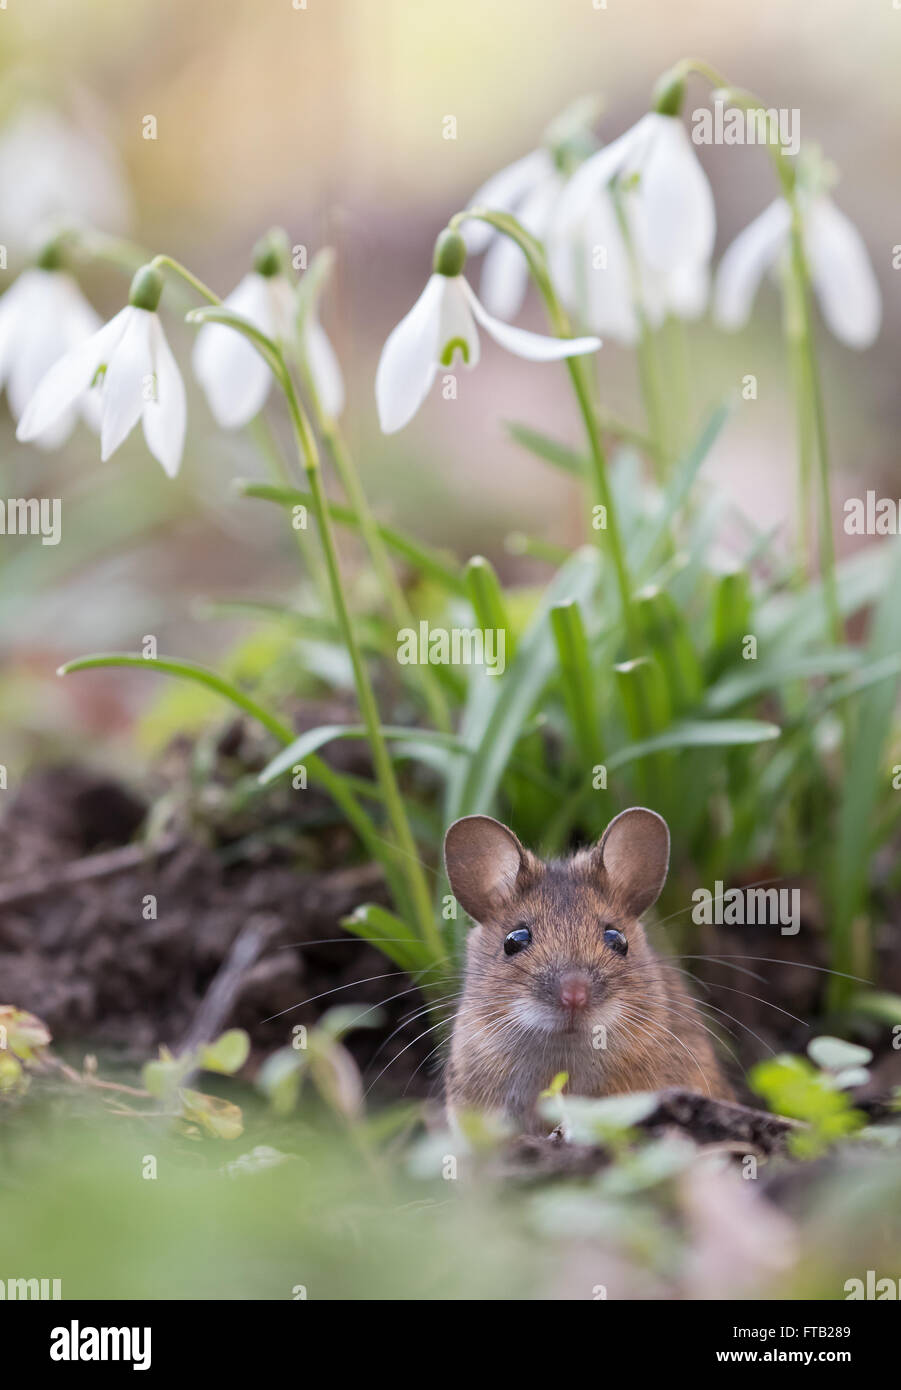 House mouse (Mus musculus) peeking out of its hole, Hesse, Germany - Stock Image